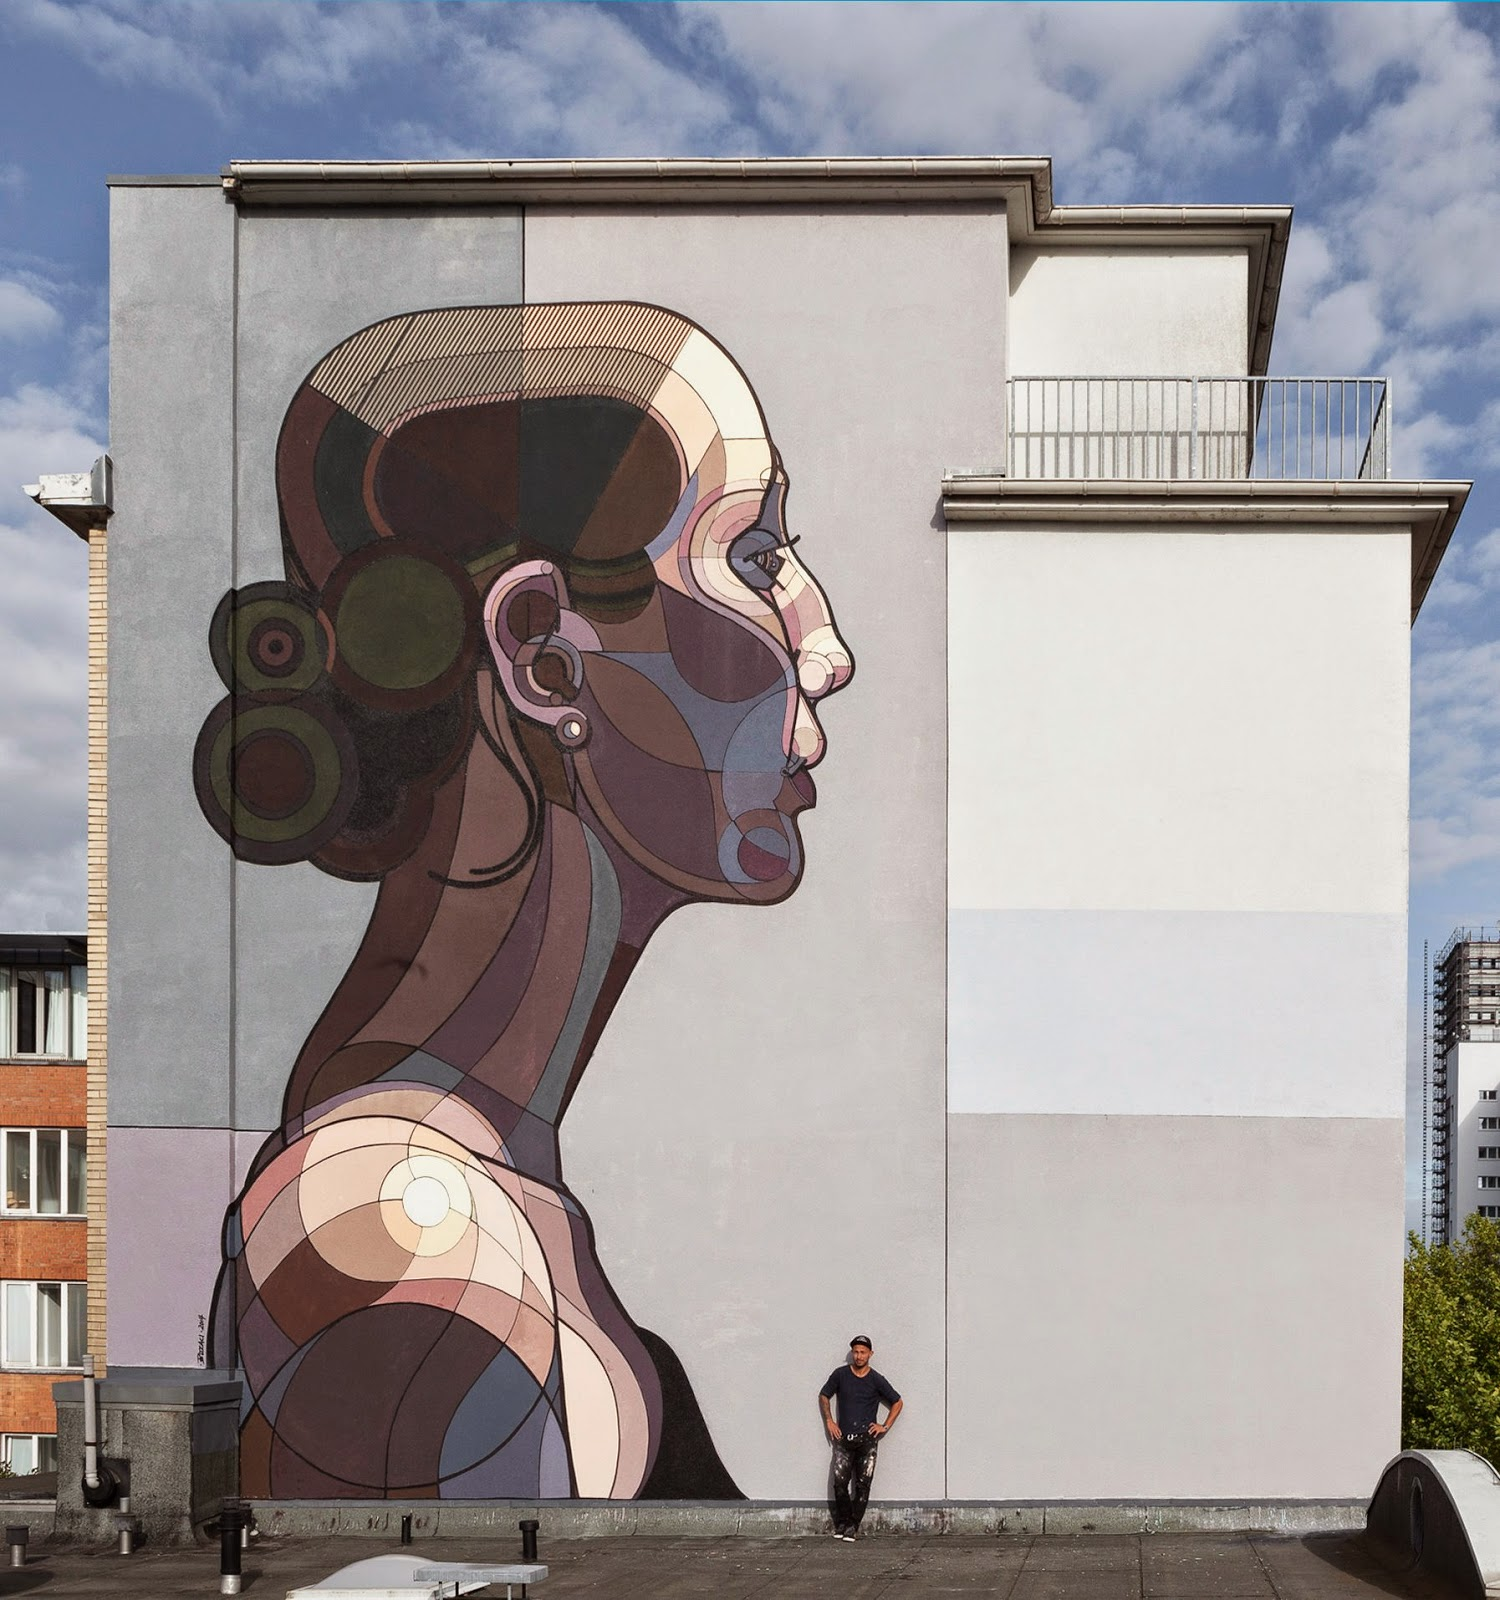 Known as Toast in graffiti circles and Atalier in graphic design circles, Ata Bozaci has spent the last few days working on this massive new piece somewhere on the streets of Hamburg in Germany.